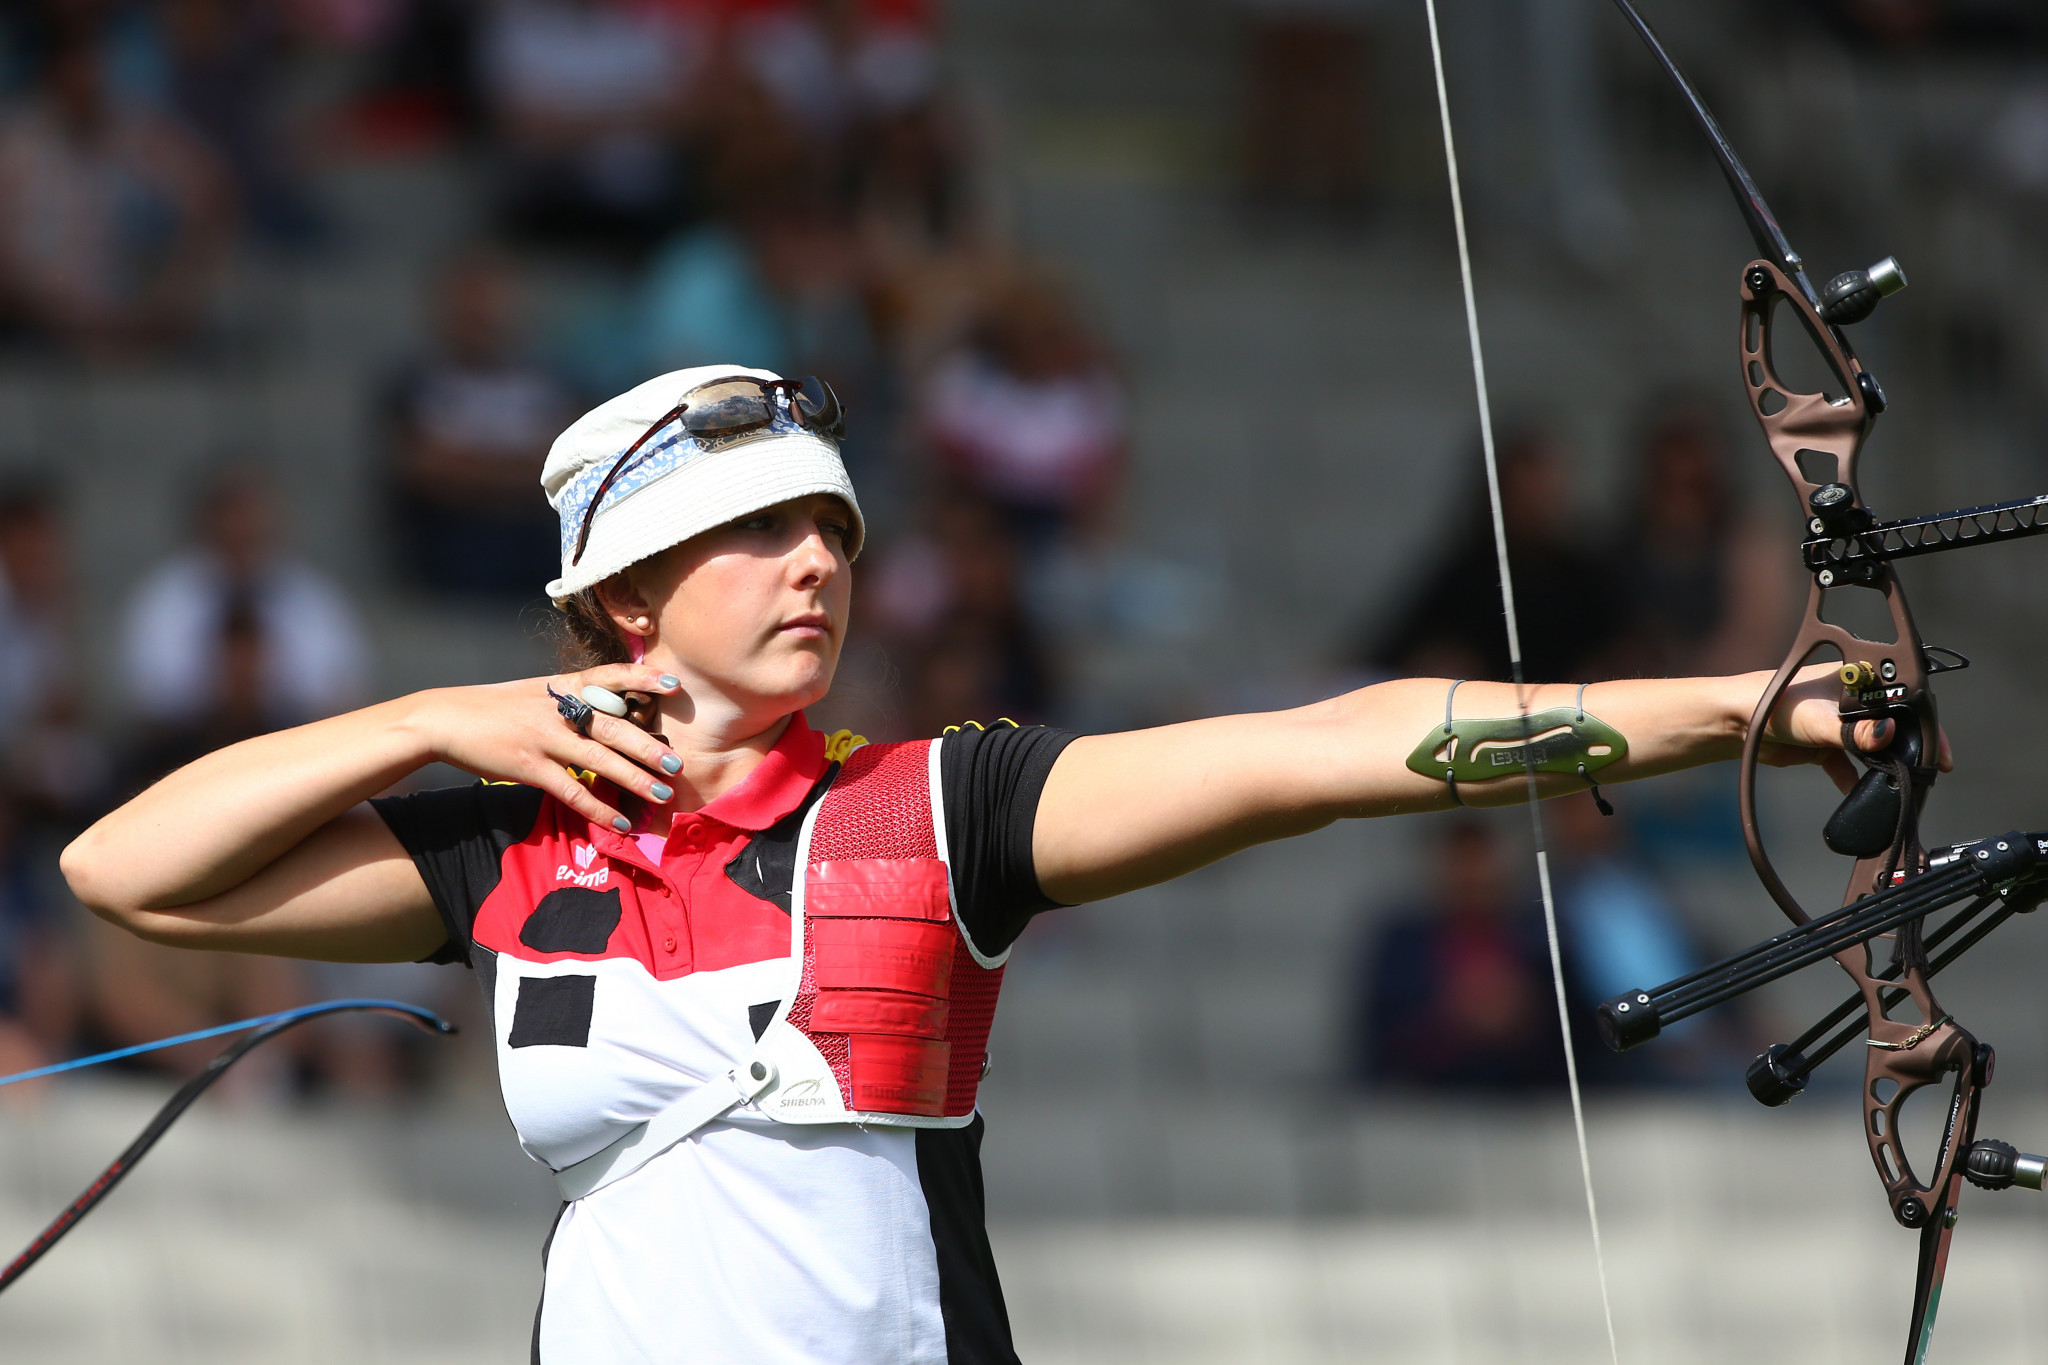 German archer Richter to miss Tokyo 2020 after shock retirement